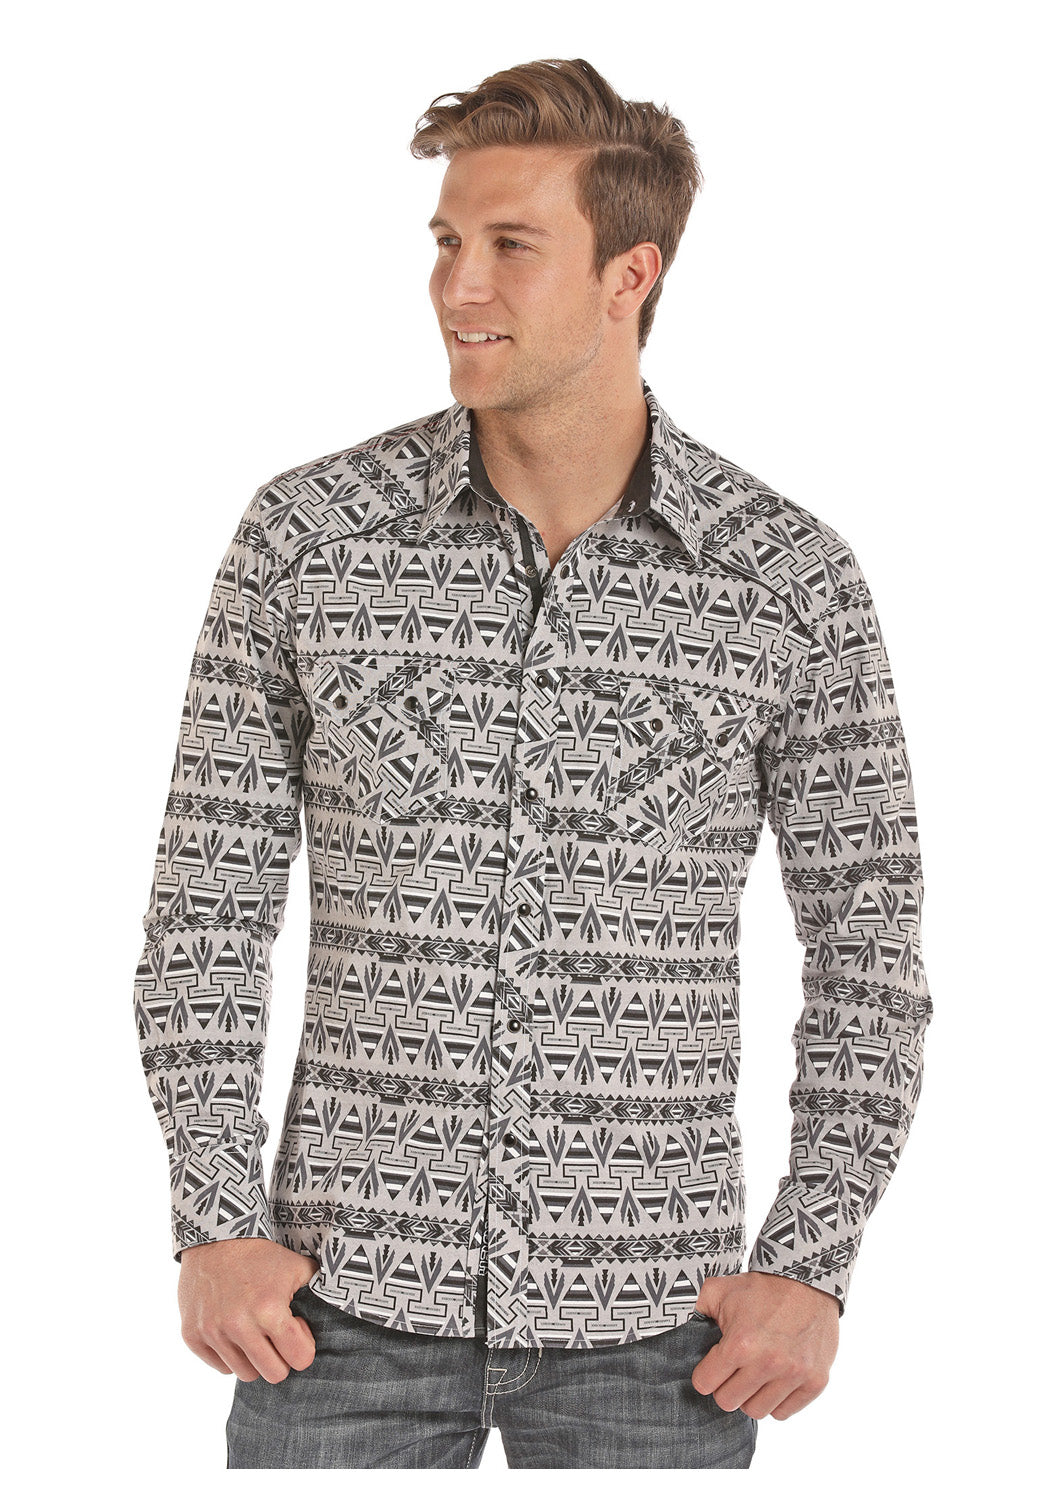 Panhandle Aztec Print Long Sleeve Men's Shirt